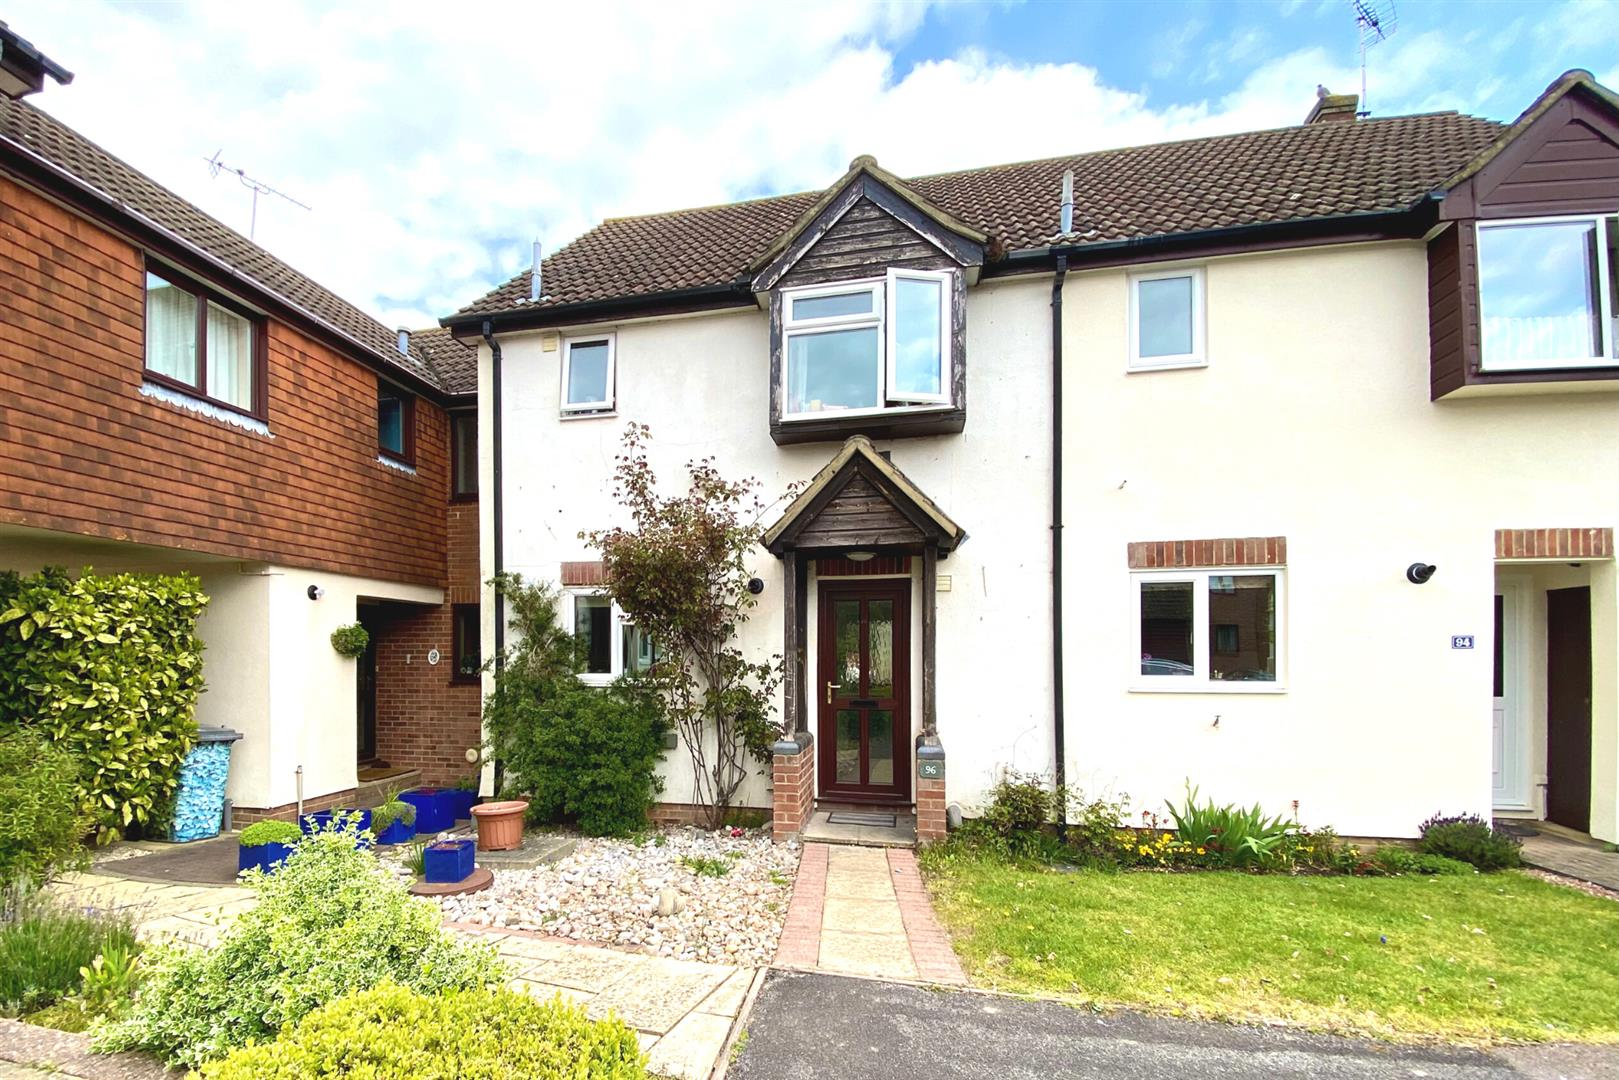 3 bed terraced for sale, RG27